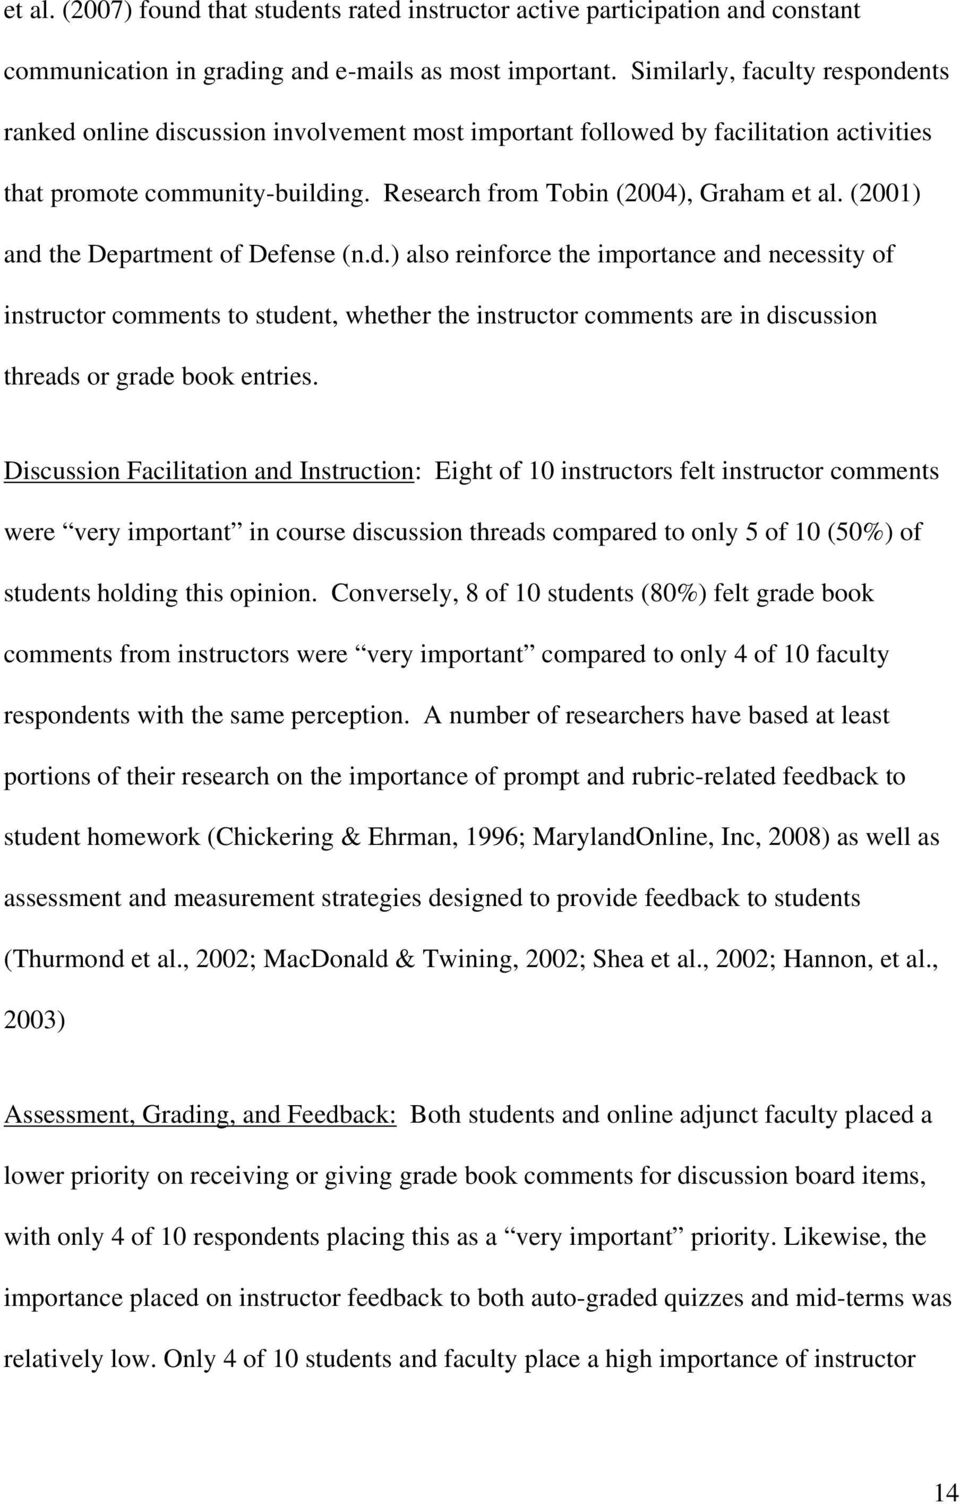 (2001) and the Department of Defense (n.d.) also reinforce the importance and necessity of instructor comments to student, whether the instructor comments are in discussion threads or grade book entries.